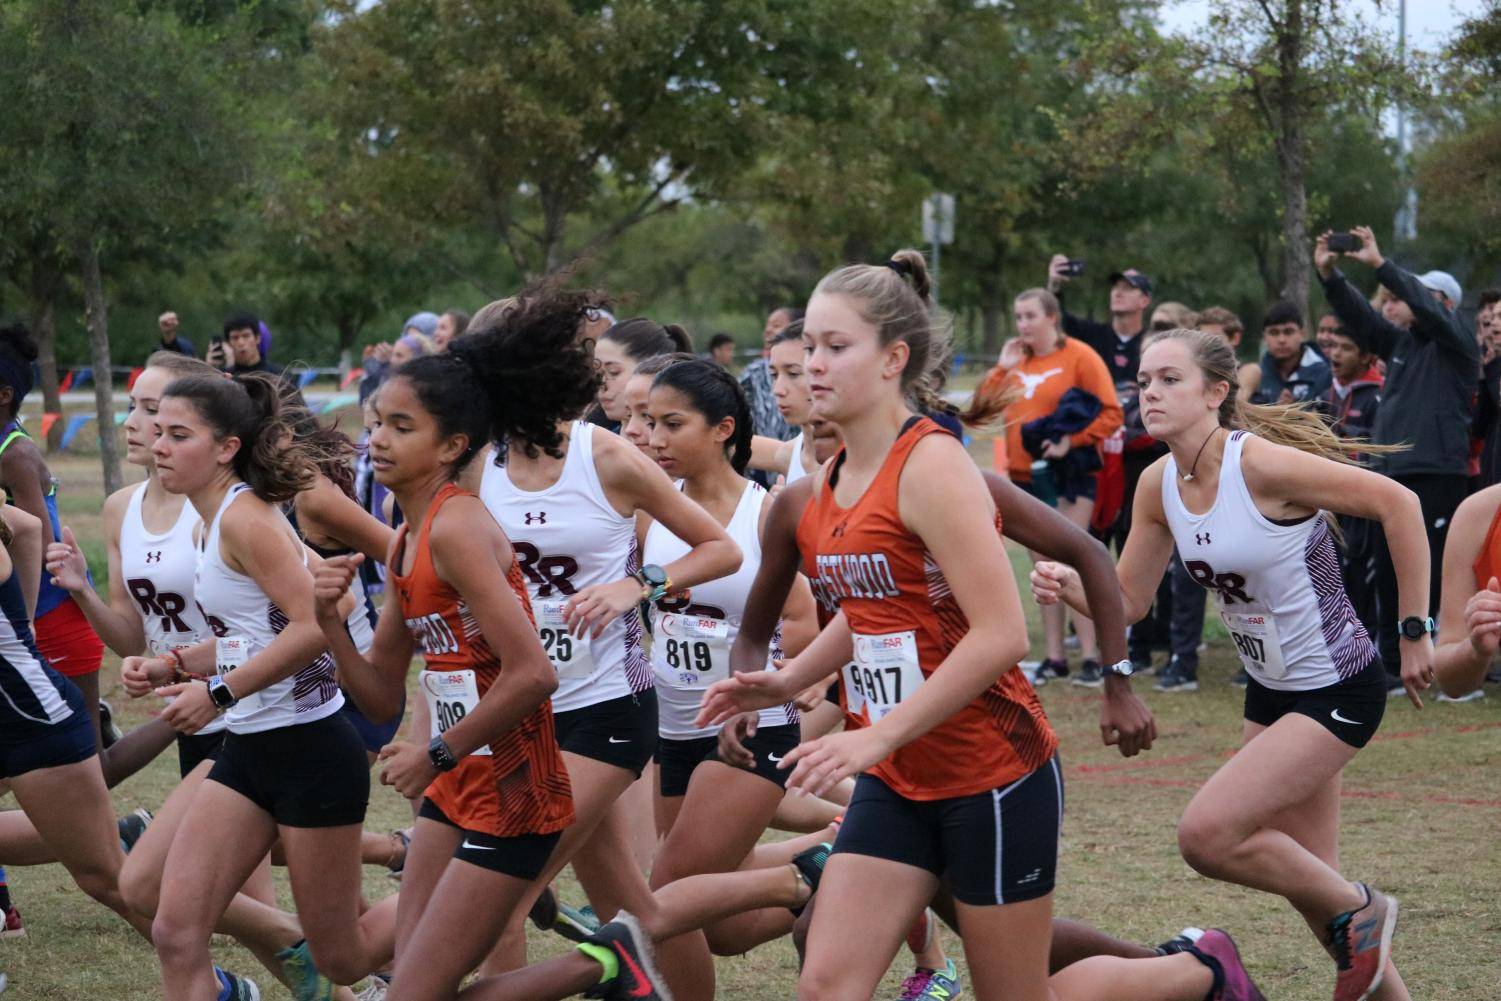 The+Varsity+Girls+rush+ahead+of+other+runners+at+the+start+of+the+race.